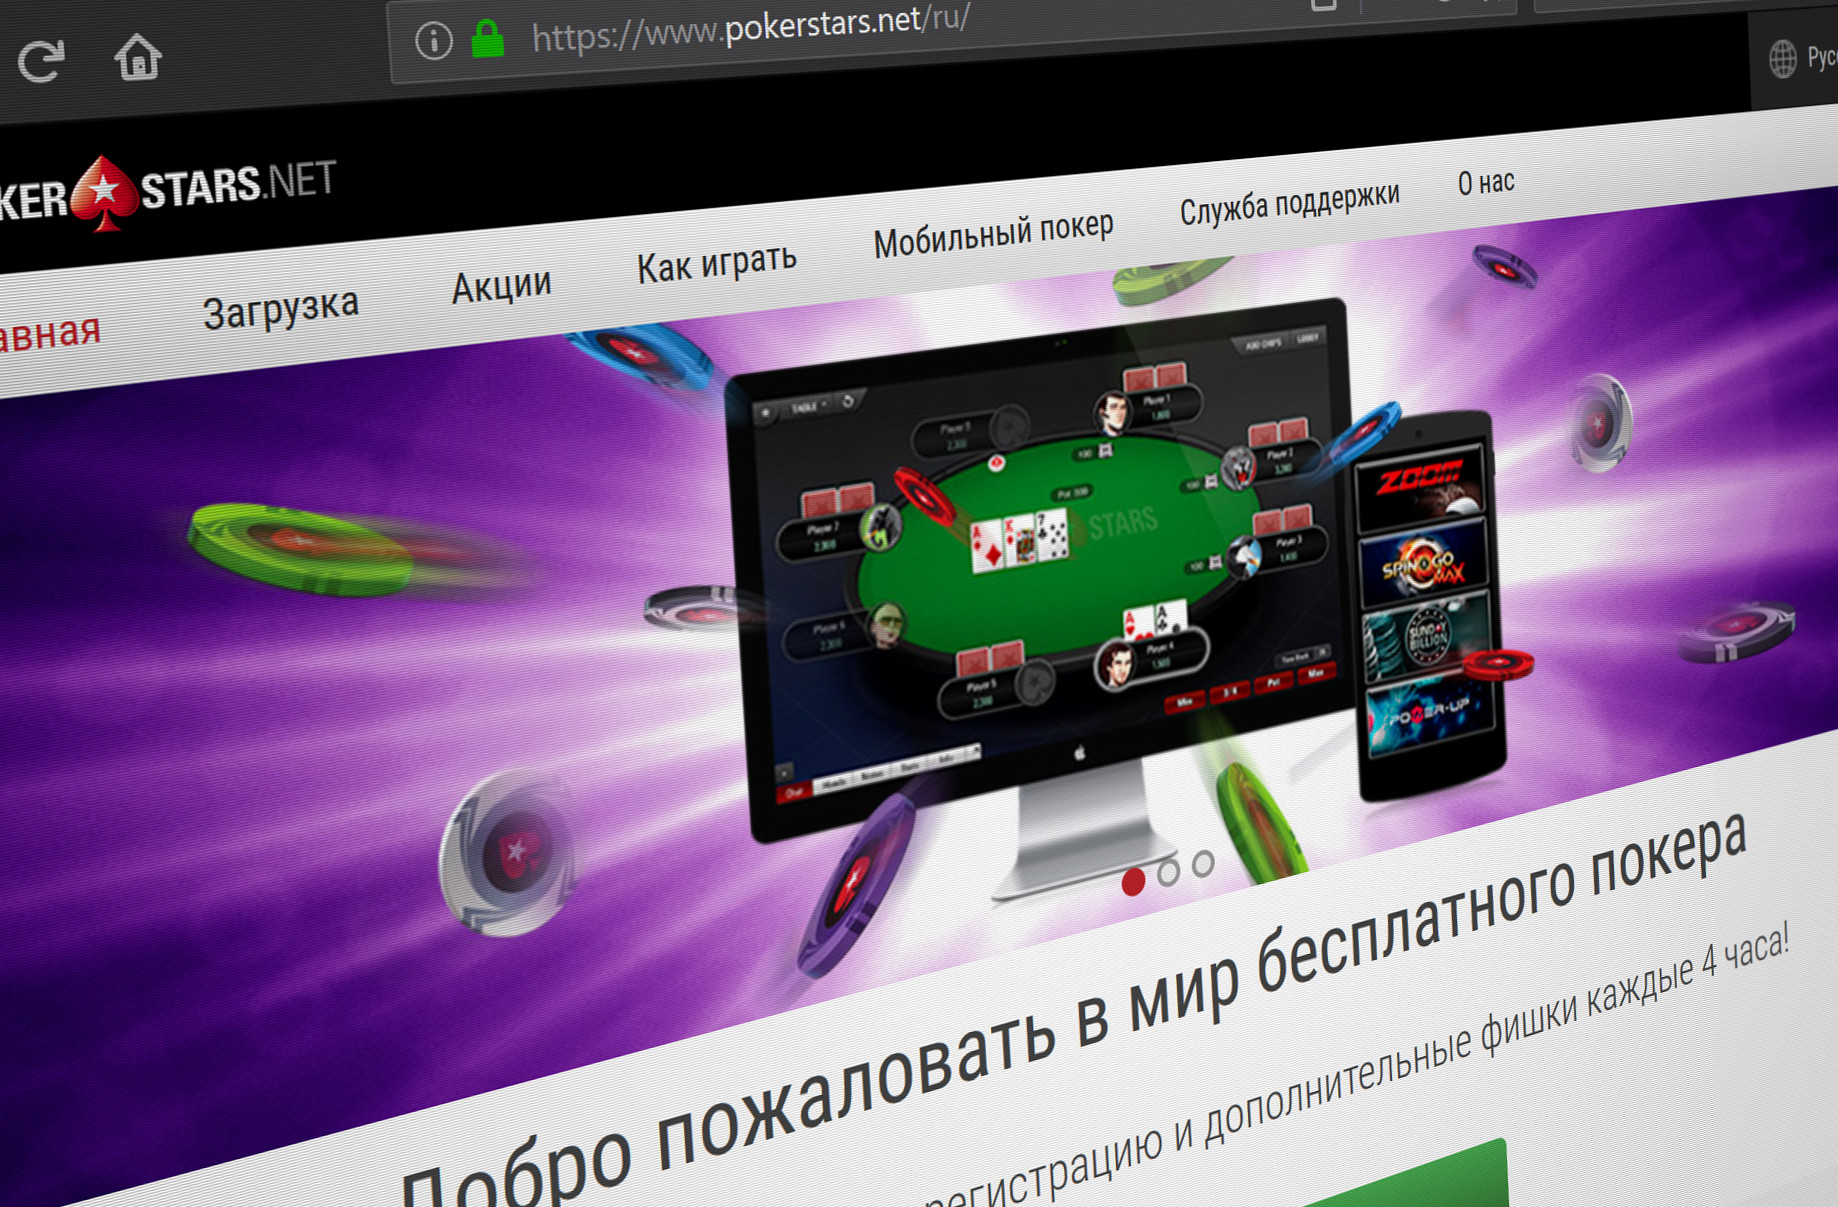 Earlier this month, PRO reported how Russia's largest bank had started to block transactions to unlicensed gambling sites.